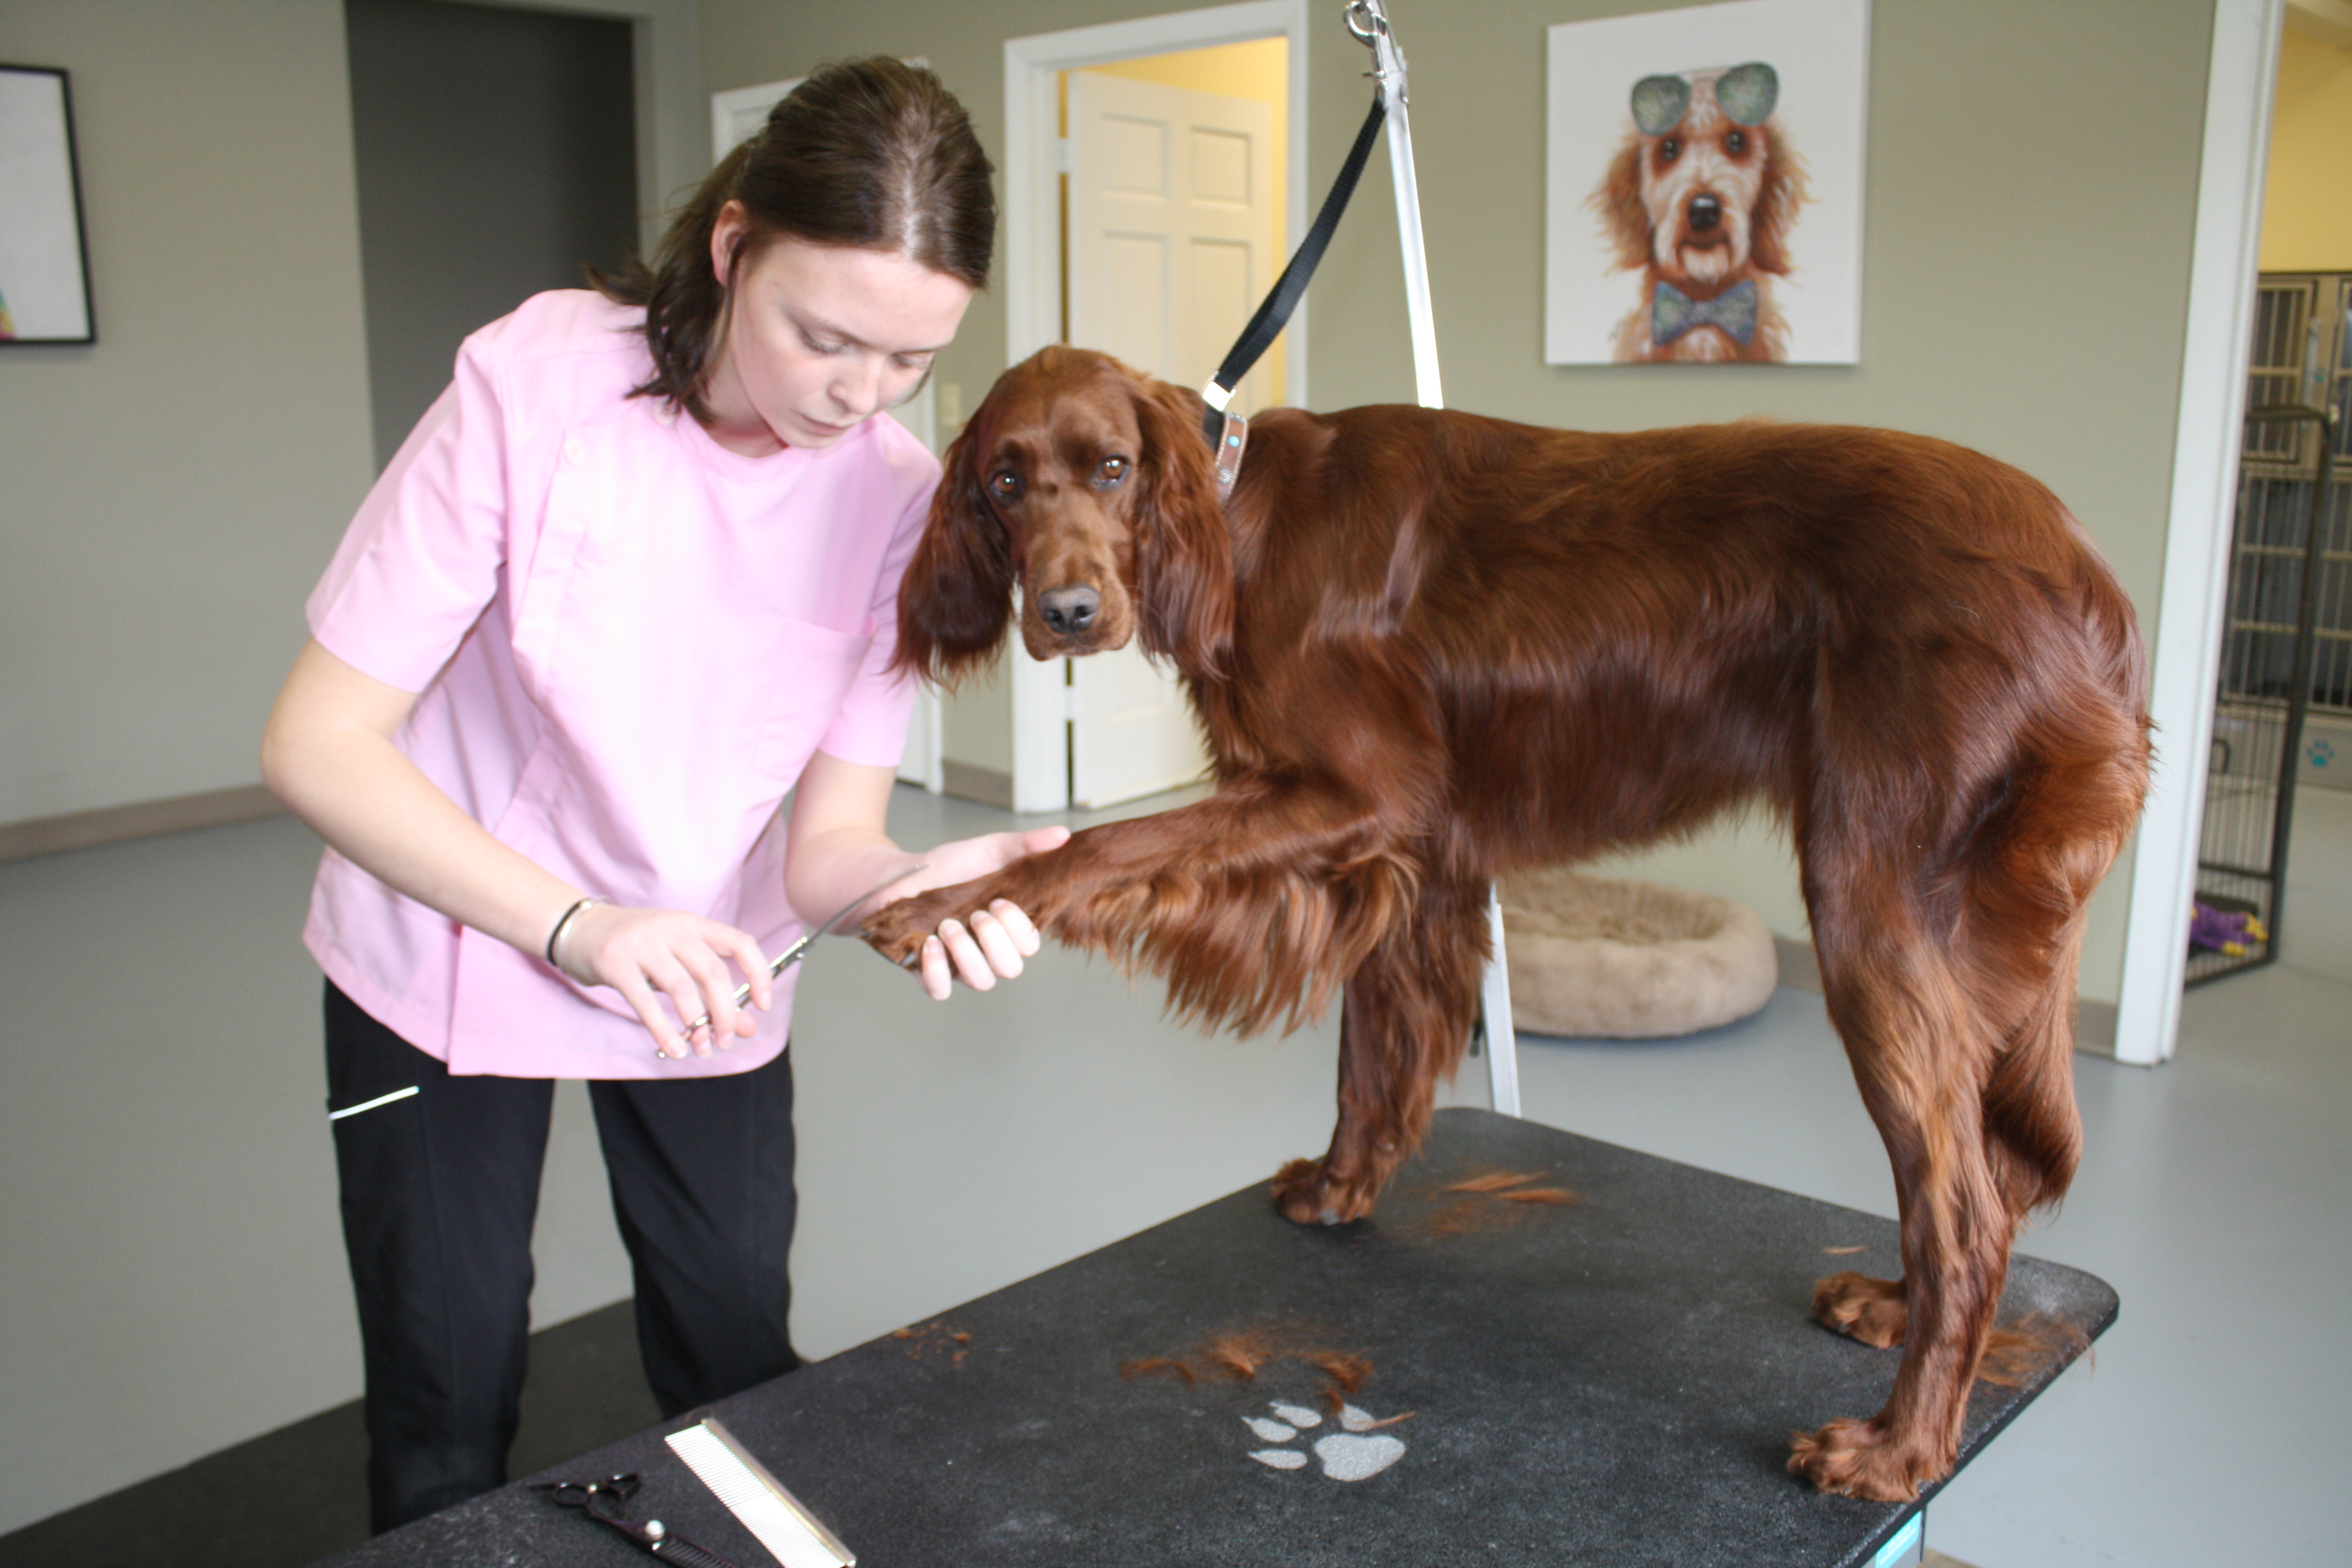 New Dog Grooming Business In Presque Isle Welcomes Furry Friends And Owners The County